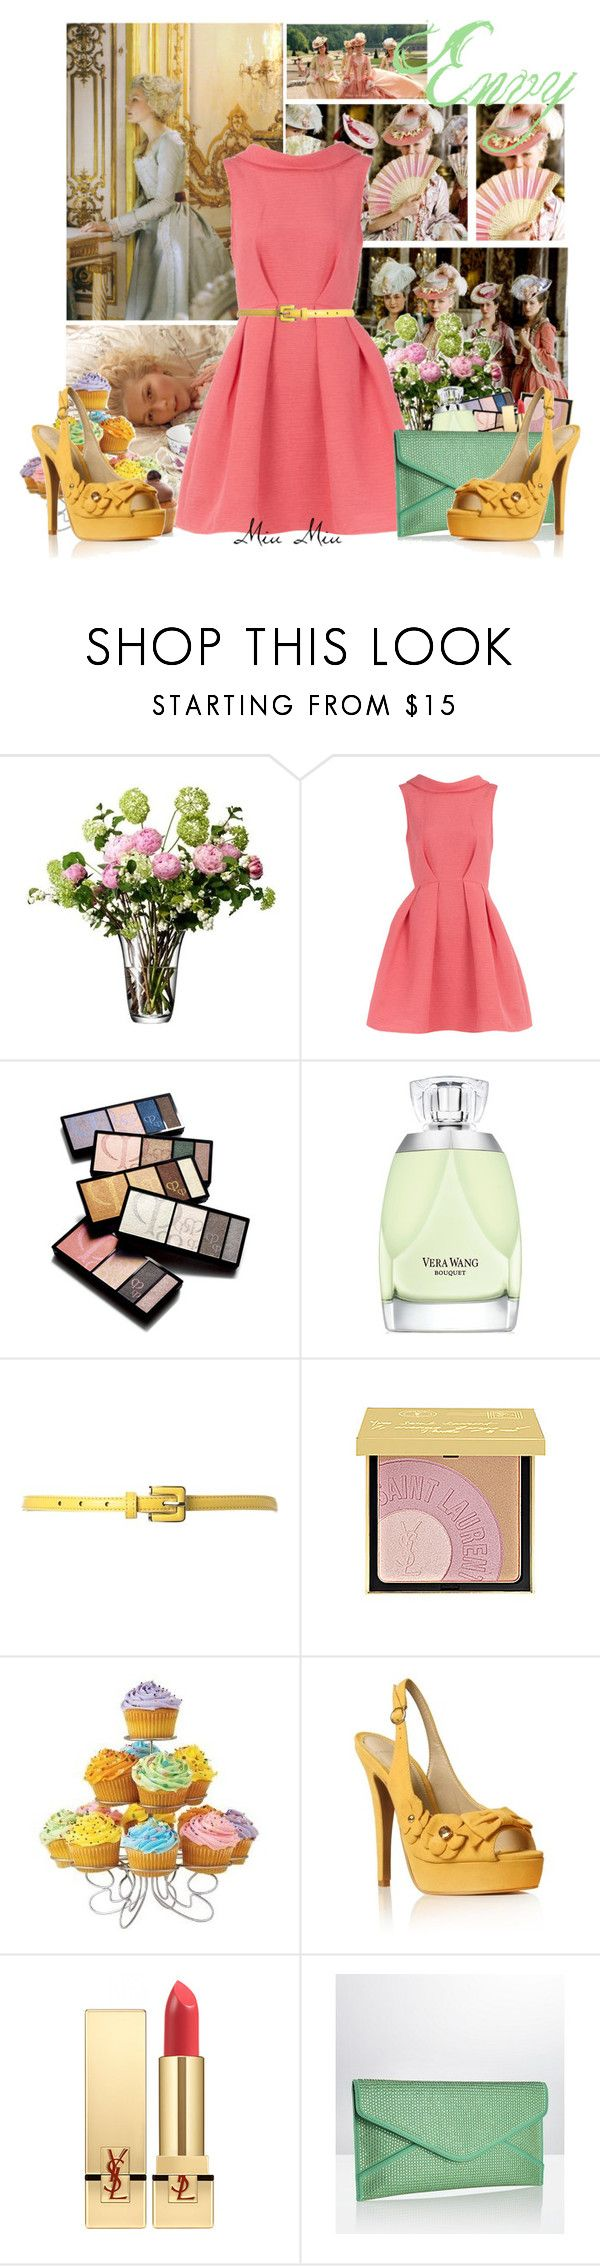 """""""The 7 deadly sins: Envy"""" by miumiu ❤ liked on Polyvore featuring Dorothy Perkins, Clé de Peau Beauté, Vera Wang, Therapy, Yves Saint Laurent, Wilton, Carvela, Ted Baker, platform heels and seven deadly sins"""